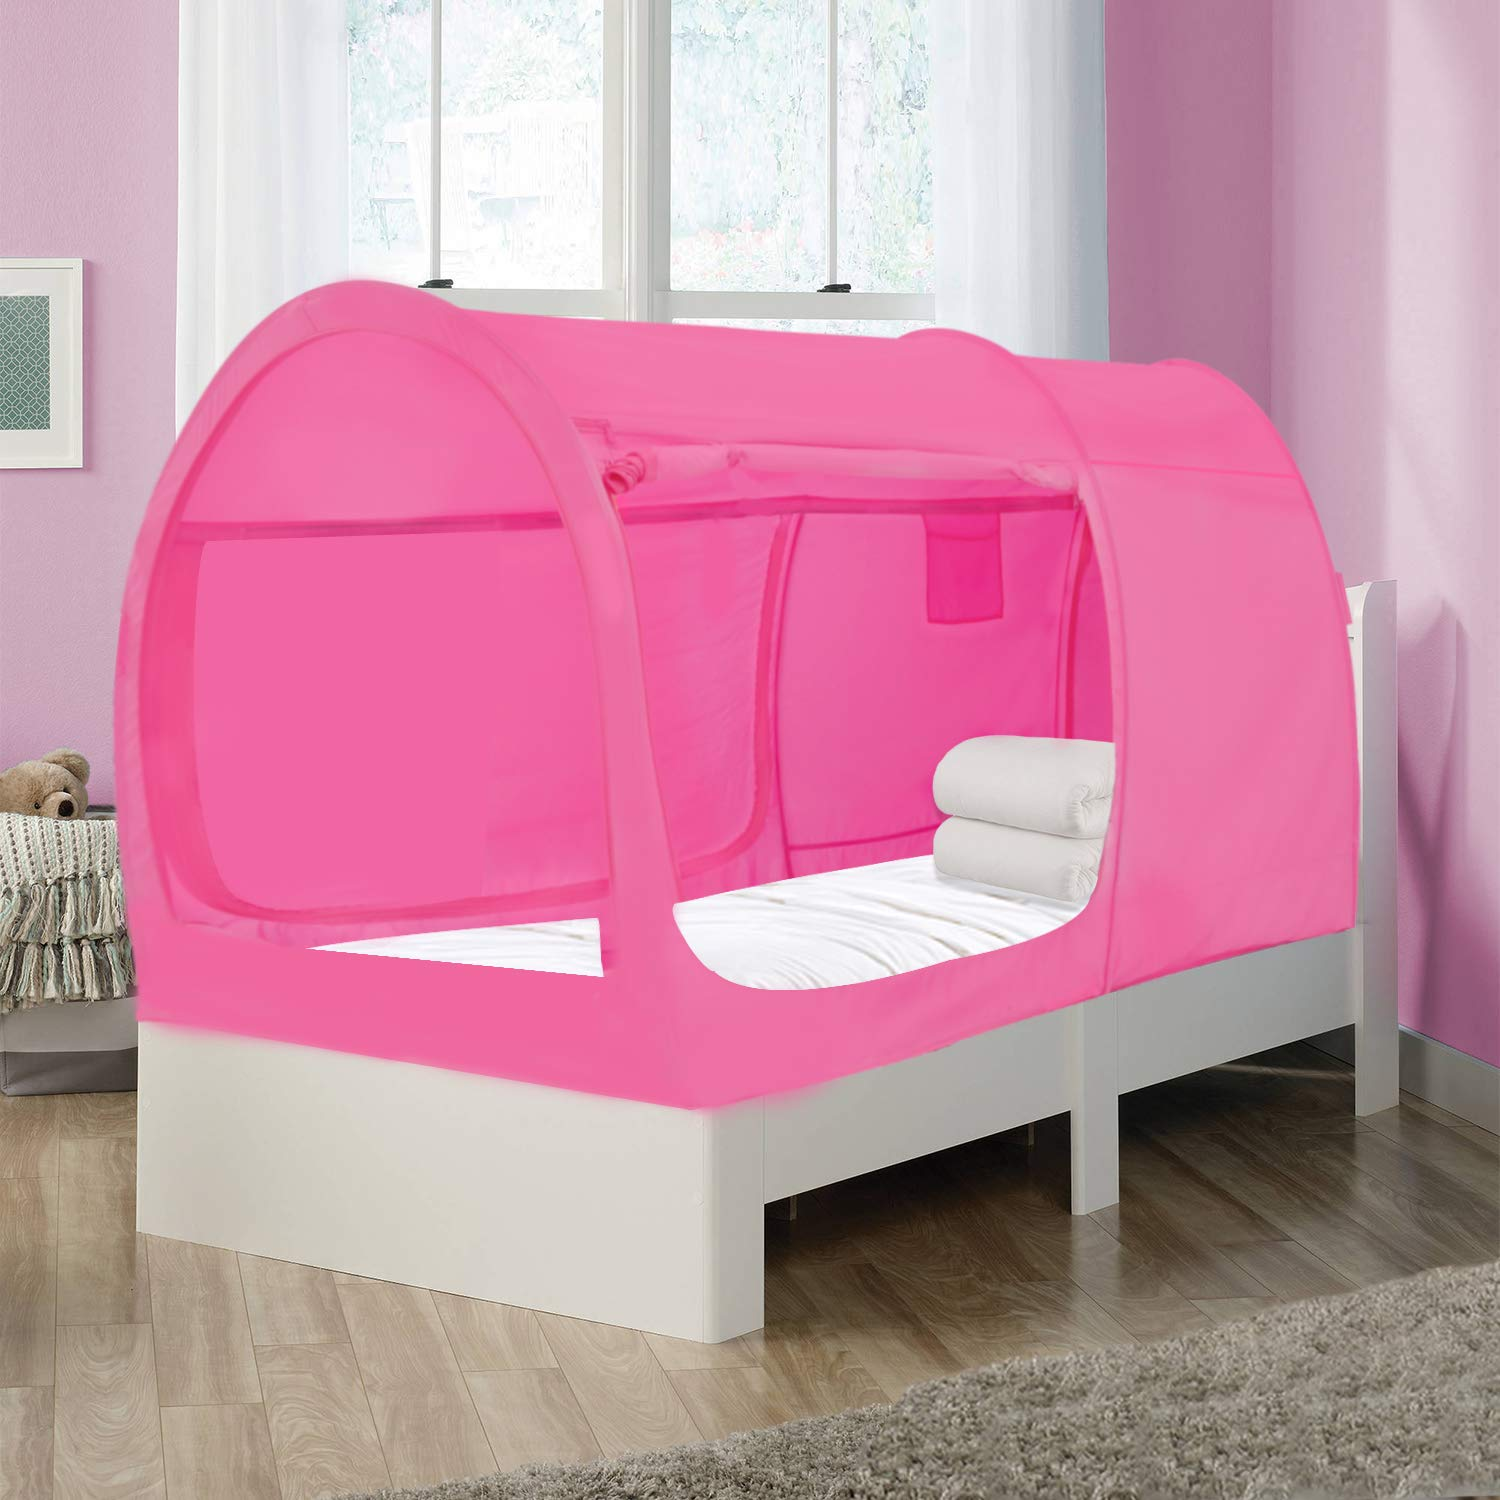 Alvantor Bed Canopy Bed Tents Dream Tents Privacy Space Twin Size Sleeping Tents Indoor Pop Up Portable Frame Curtains Breathable Pink Cottage Mattress Not Included Reducing Light